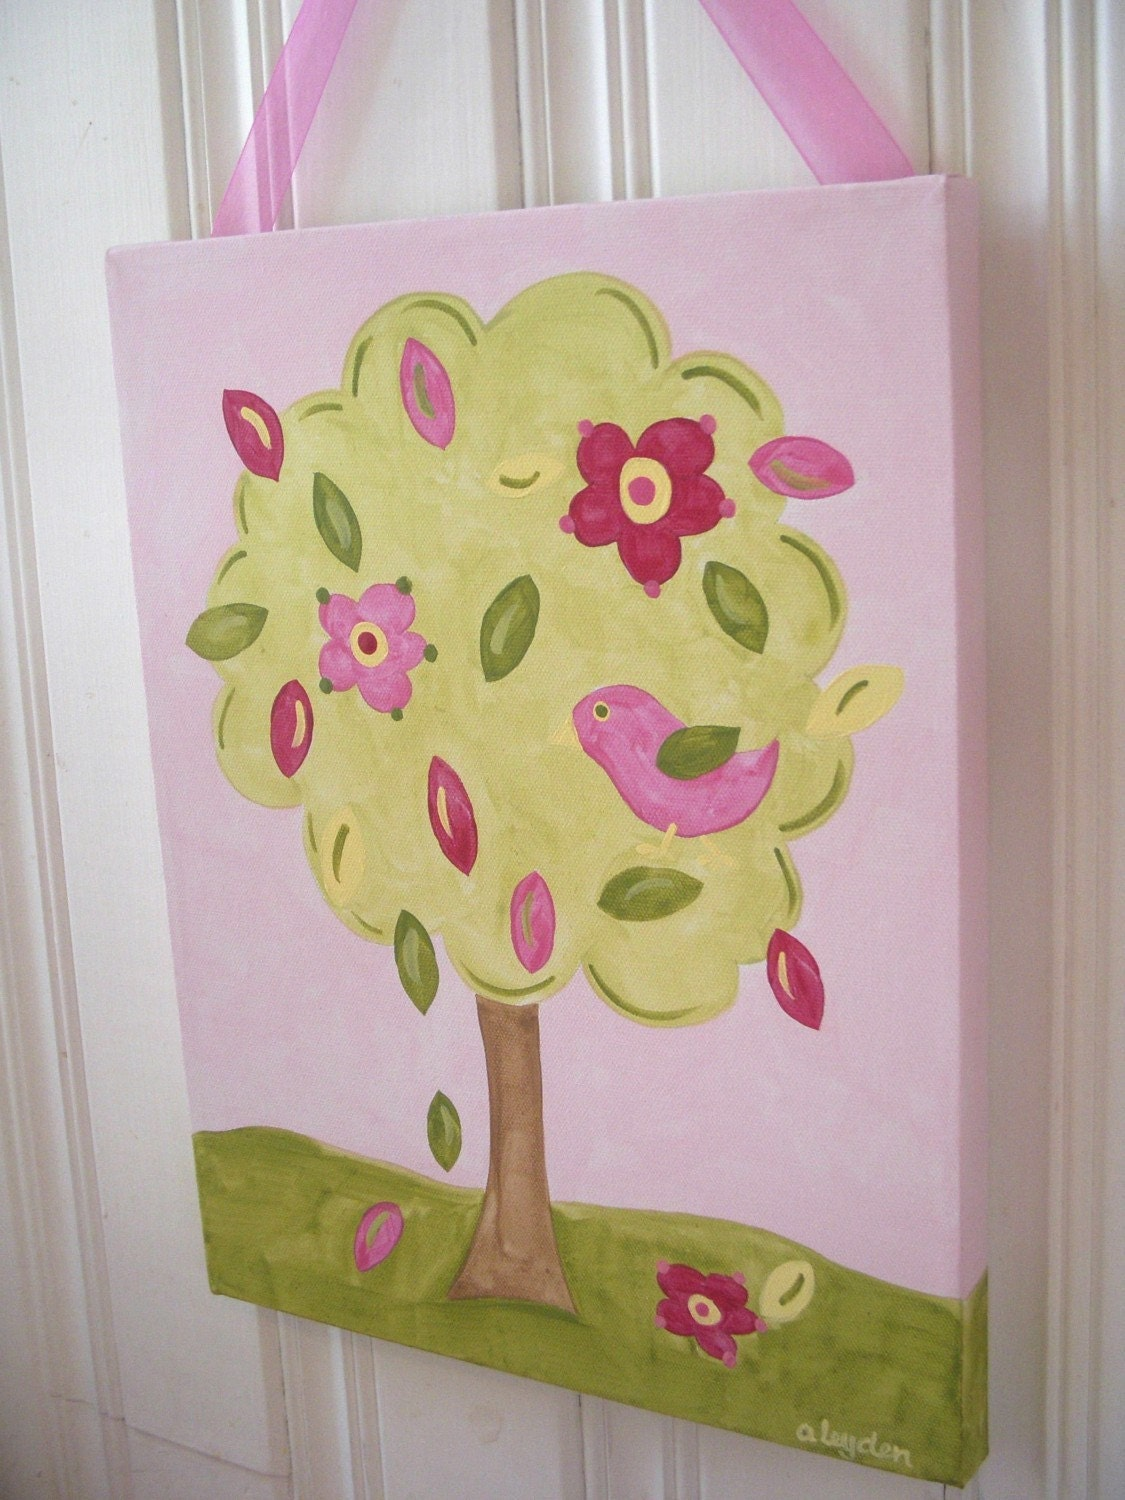 Flower tree bird canvas painting 11 x 14 Original hand painted